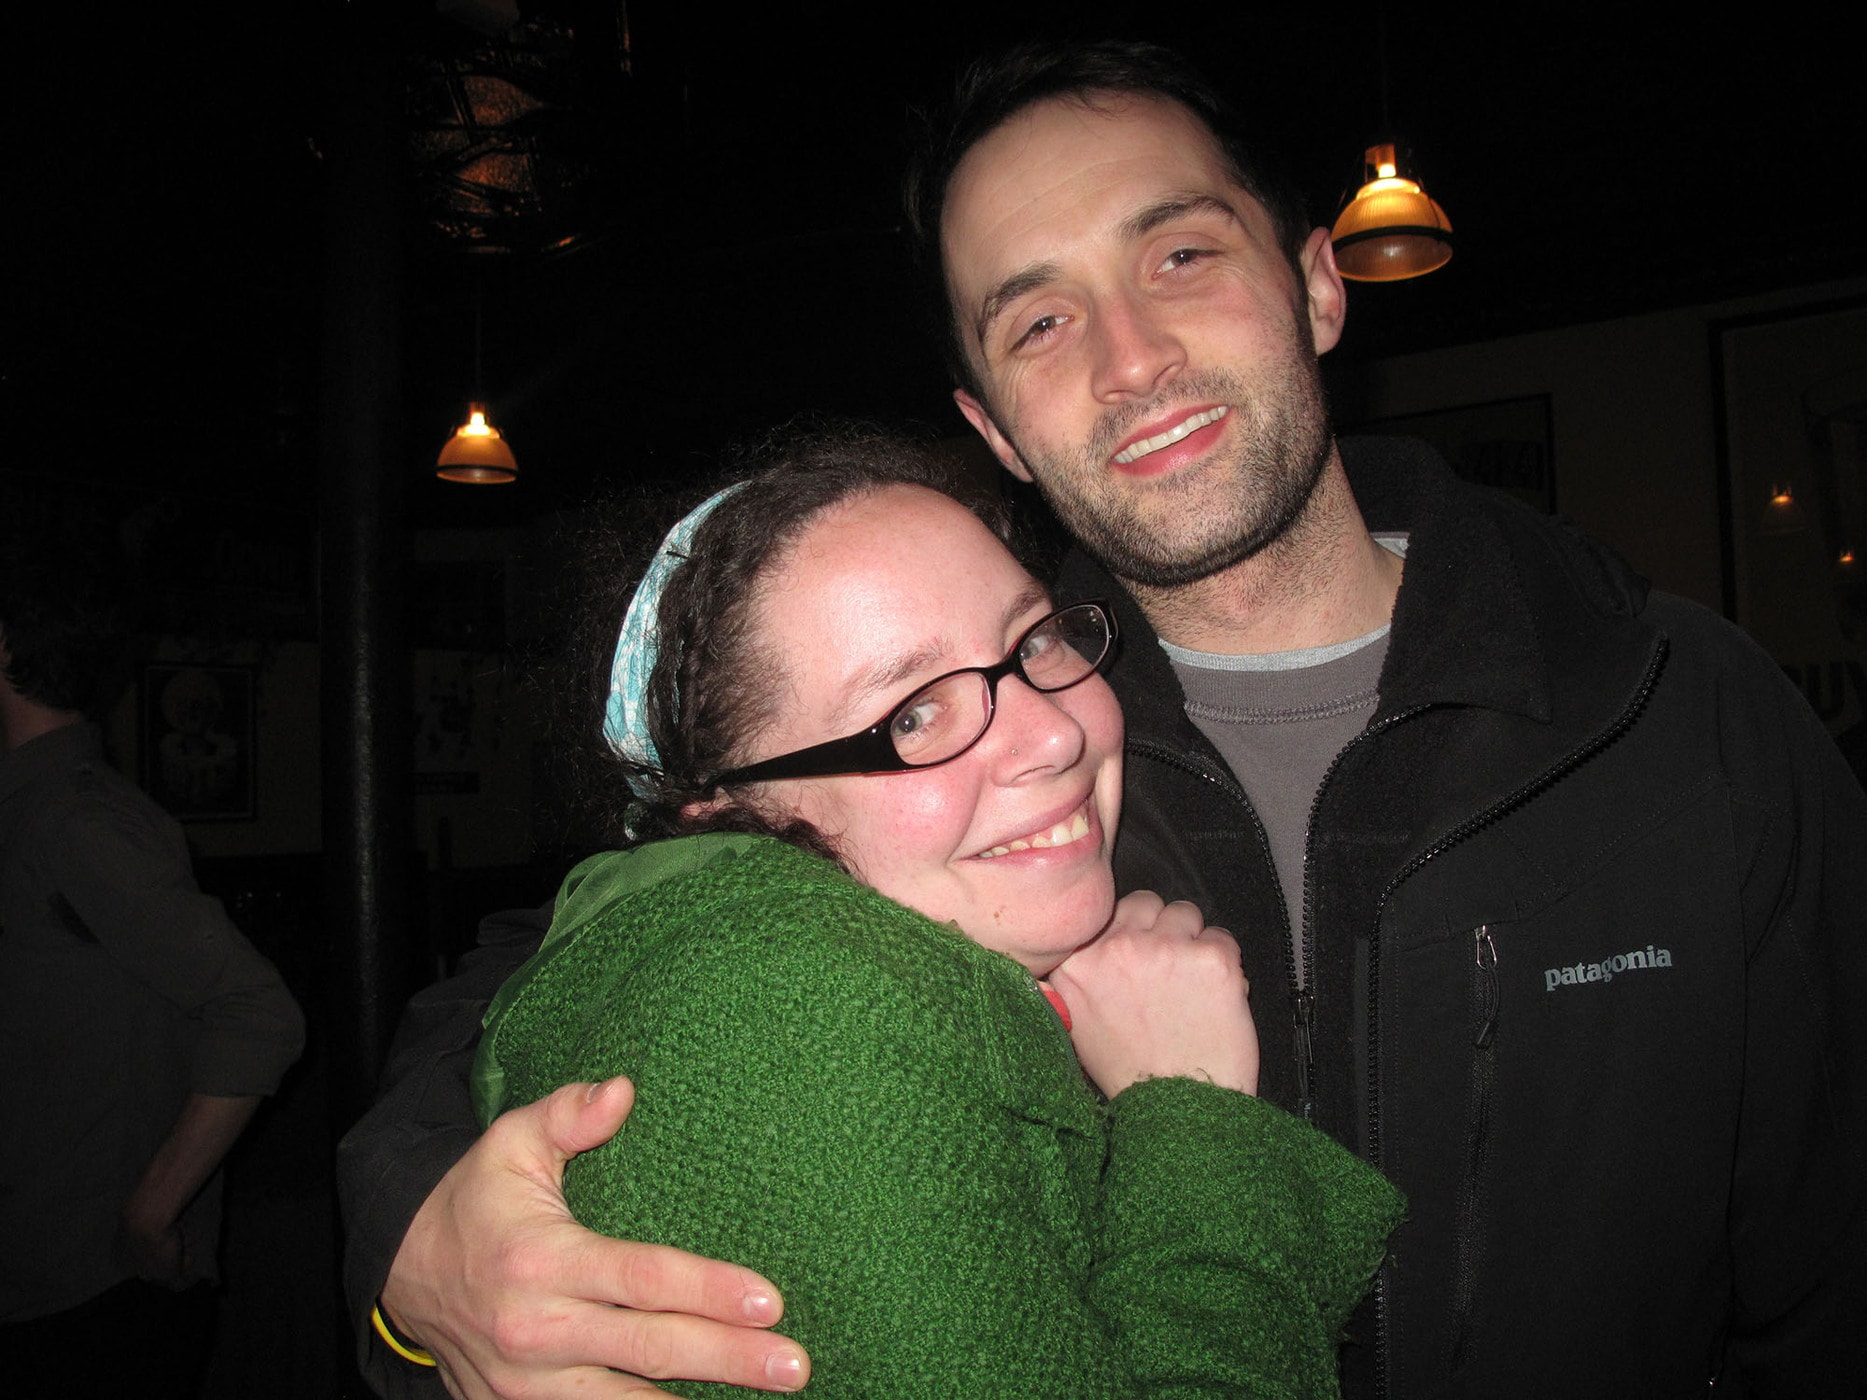 Heather and Patrick at Hopleaf